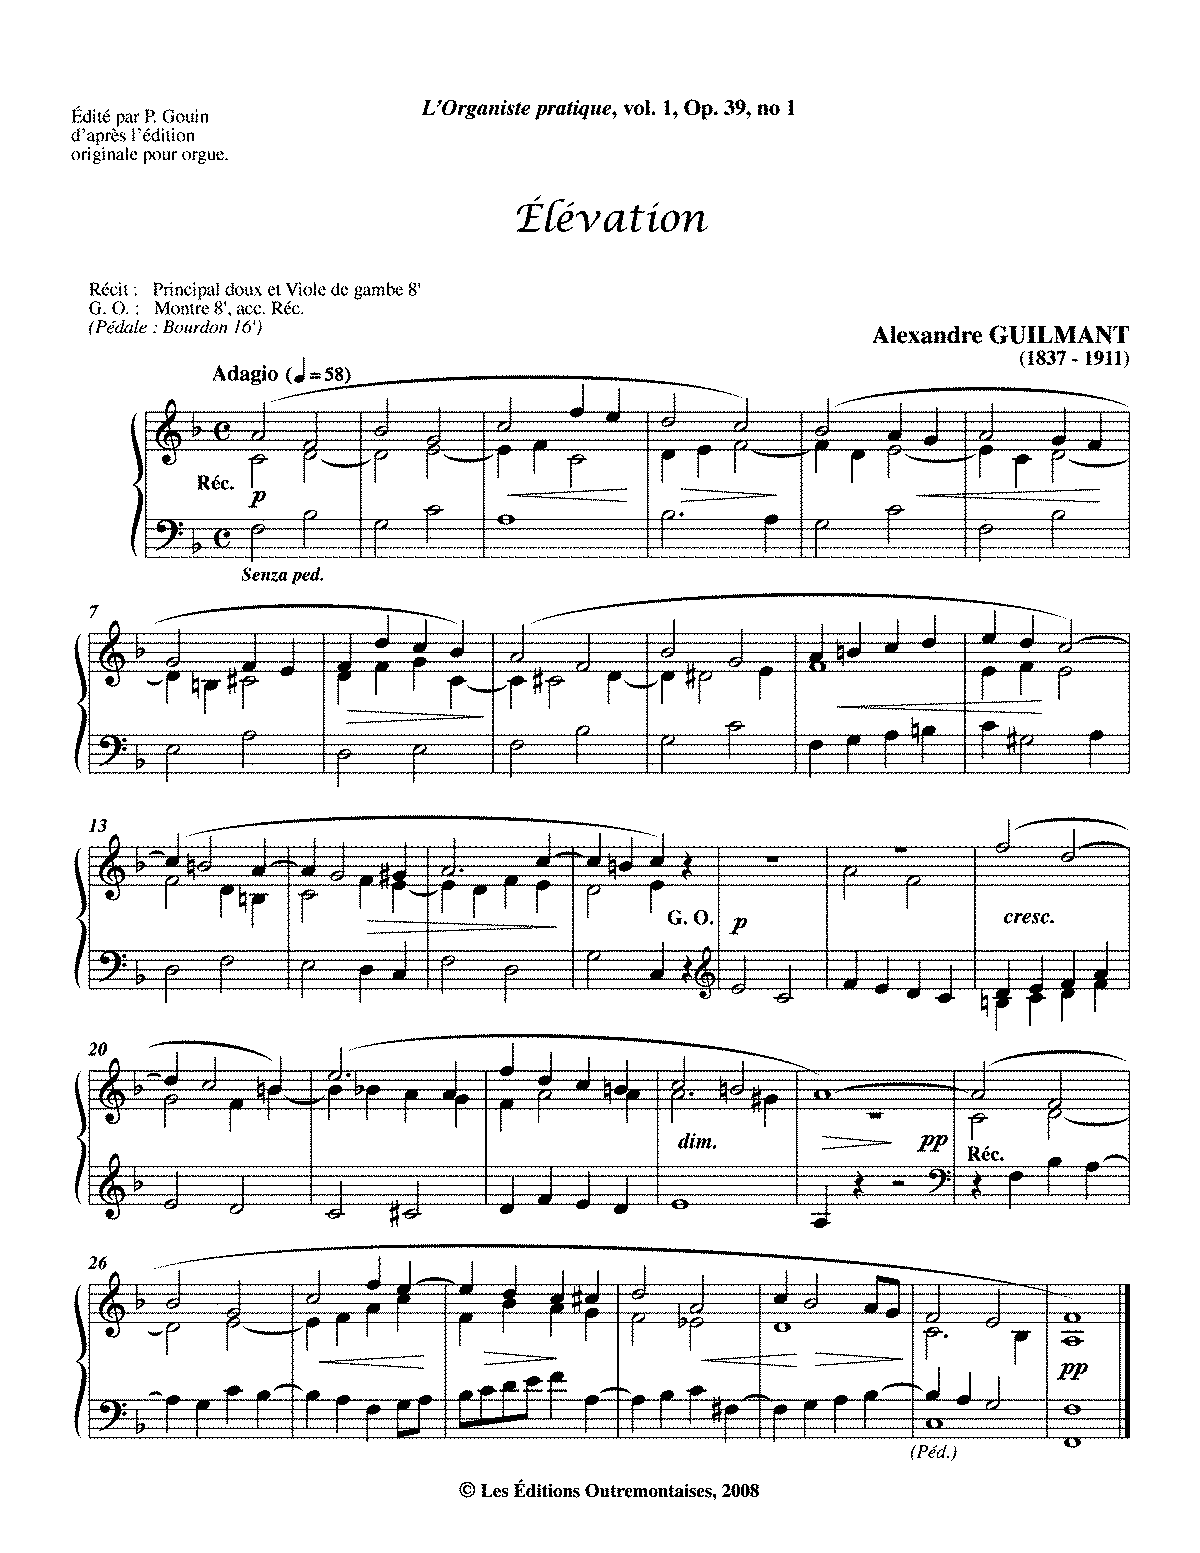 WIMA.8a13-Guilmant Op.39 Elevation.pdf